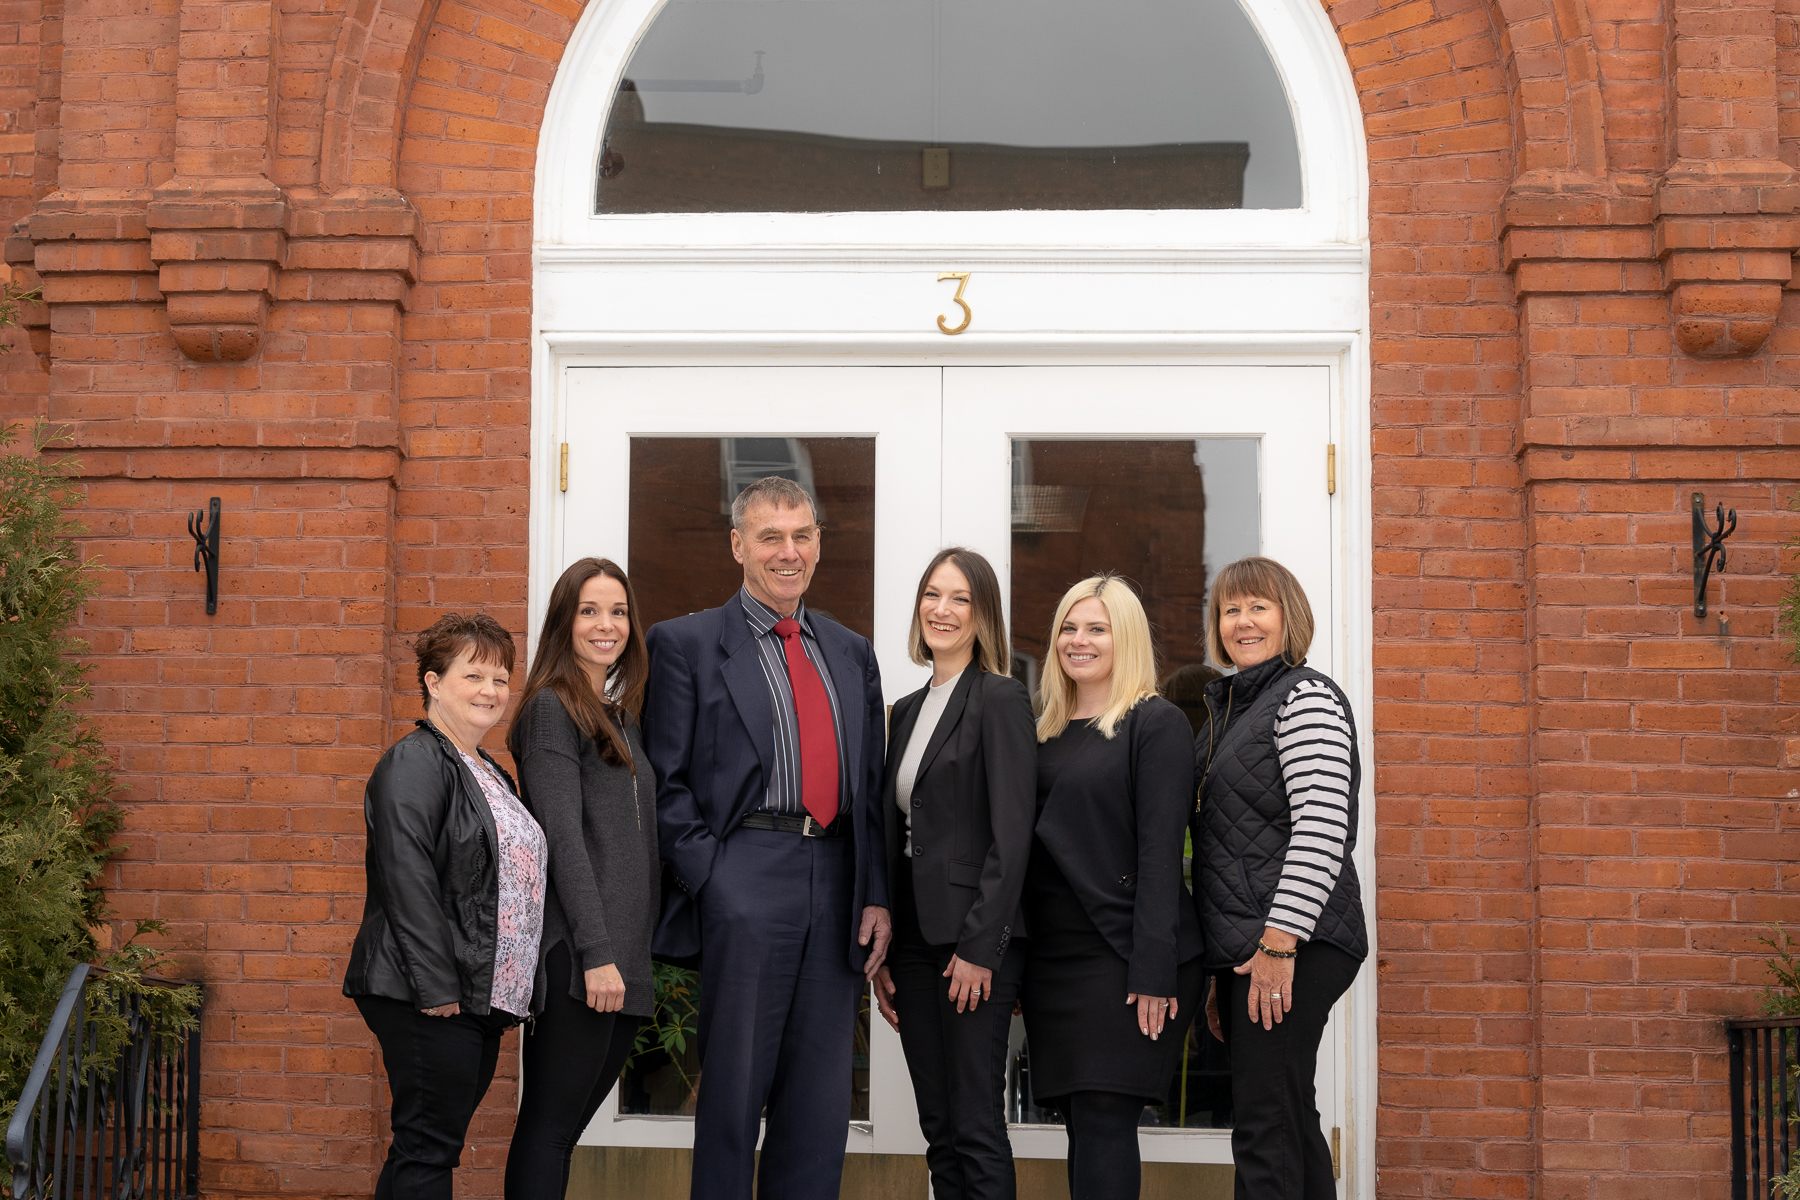 Wylaw Professional Corporation (Barristers & Solicitors)